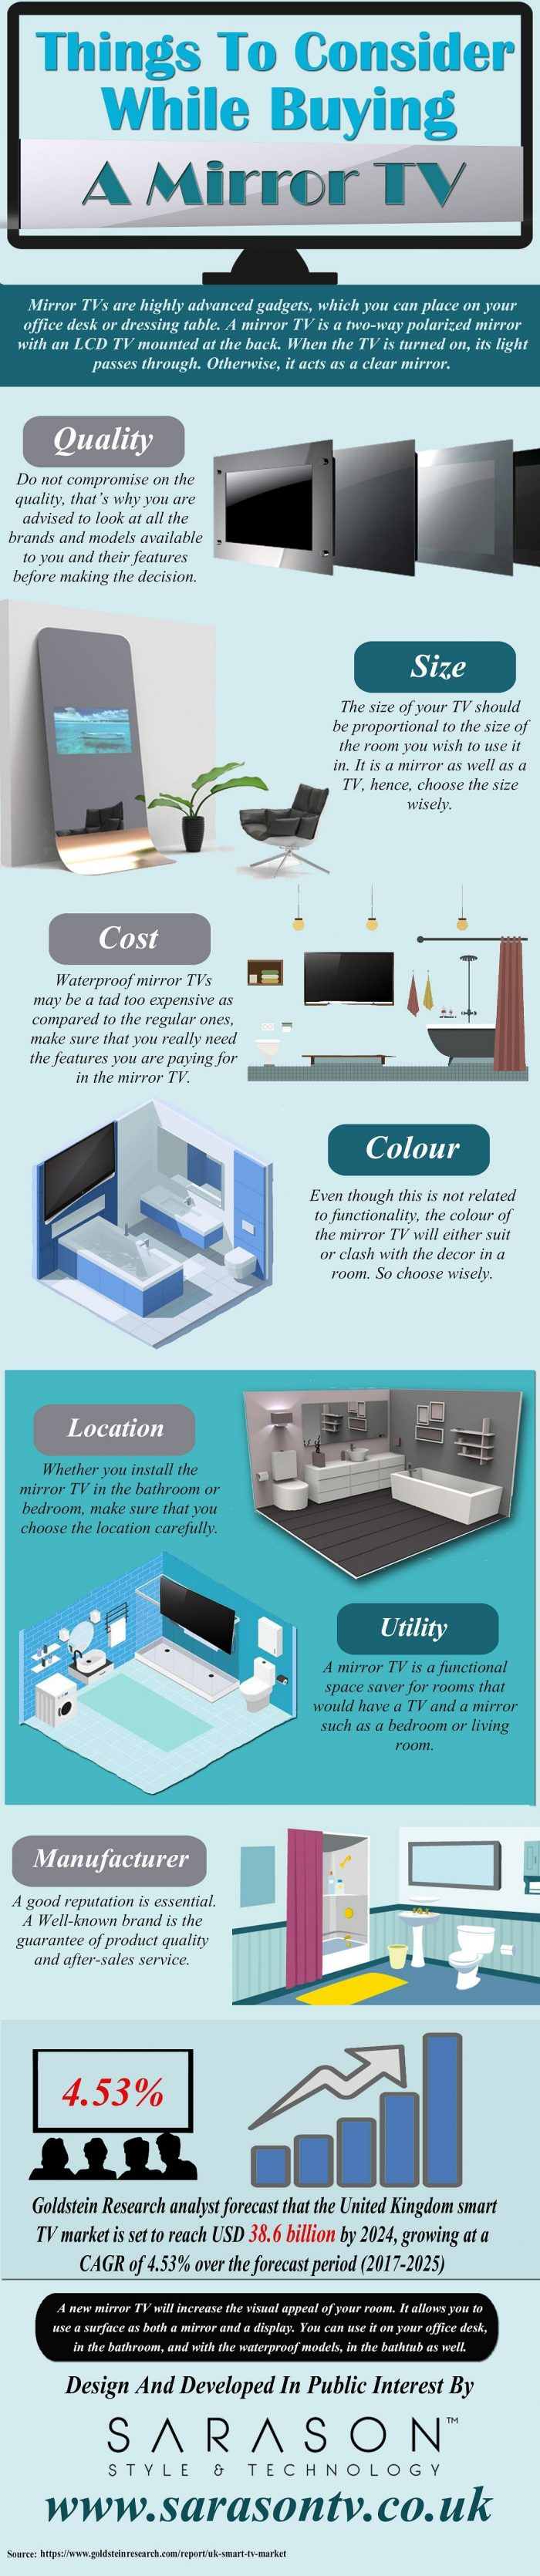 Things To Consider While Buying A Mirror TV